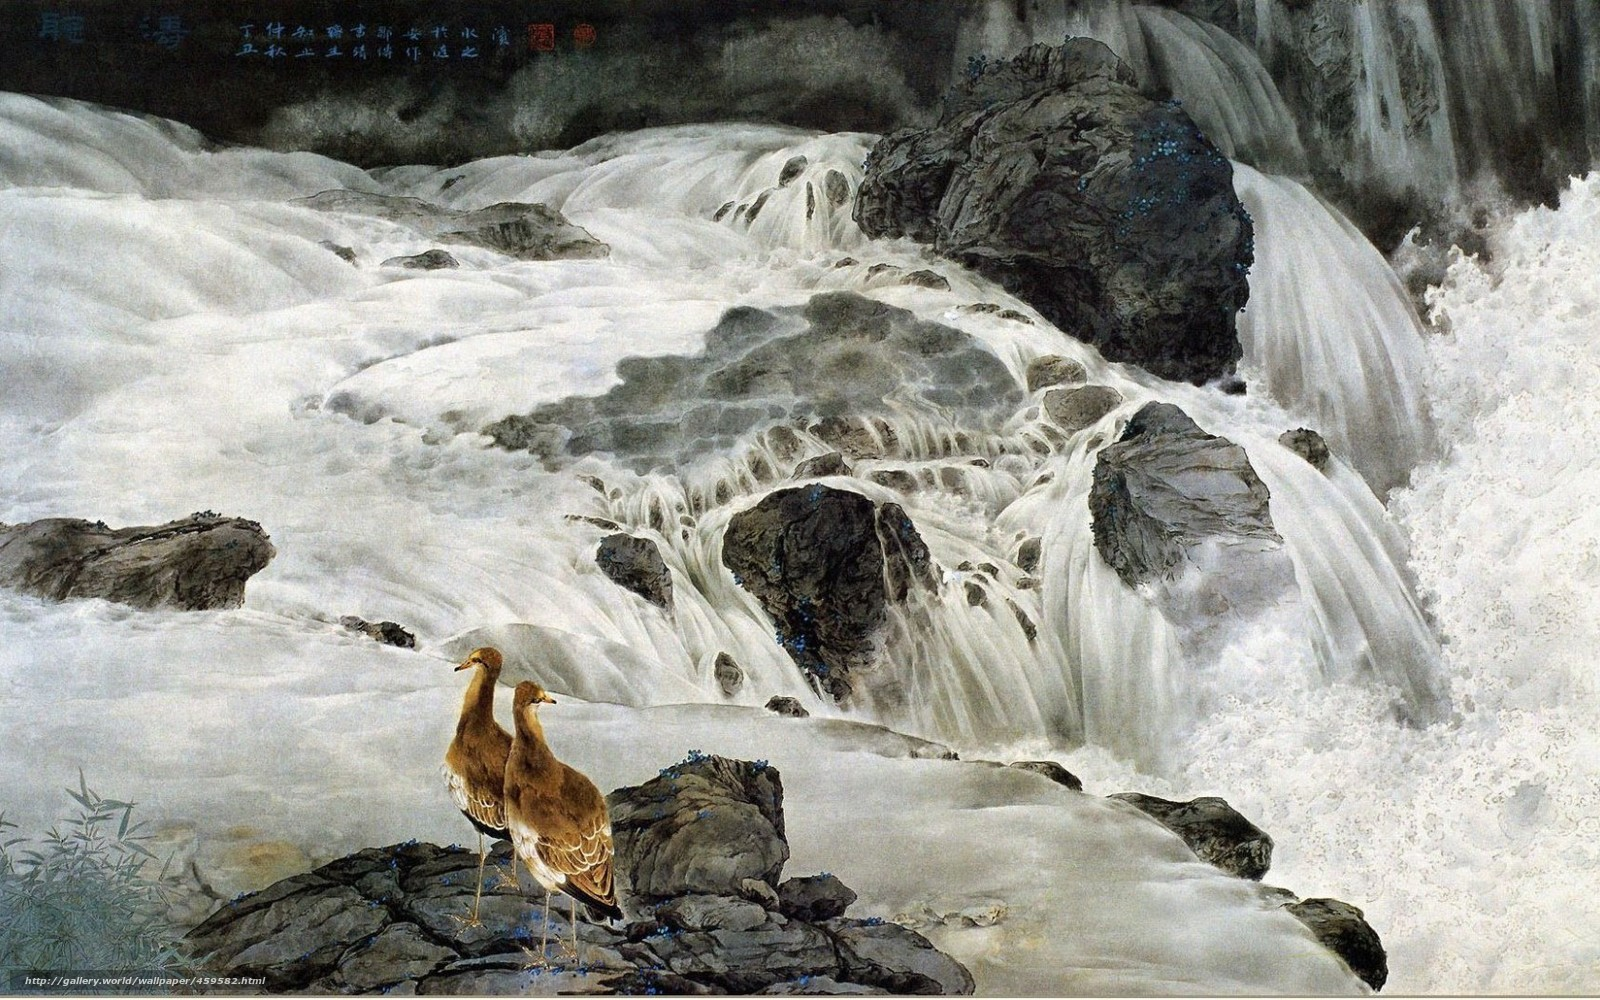 Download wallpaper Chinese painting, picture, Art, waterfall free